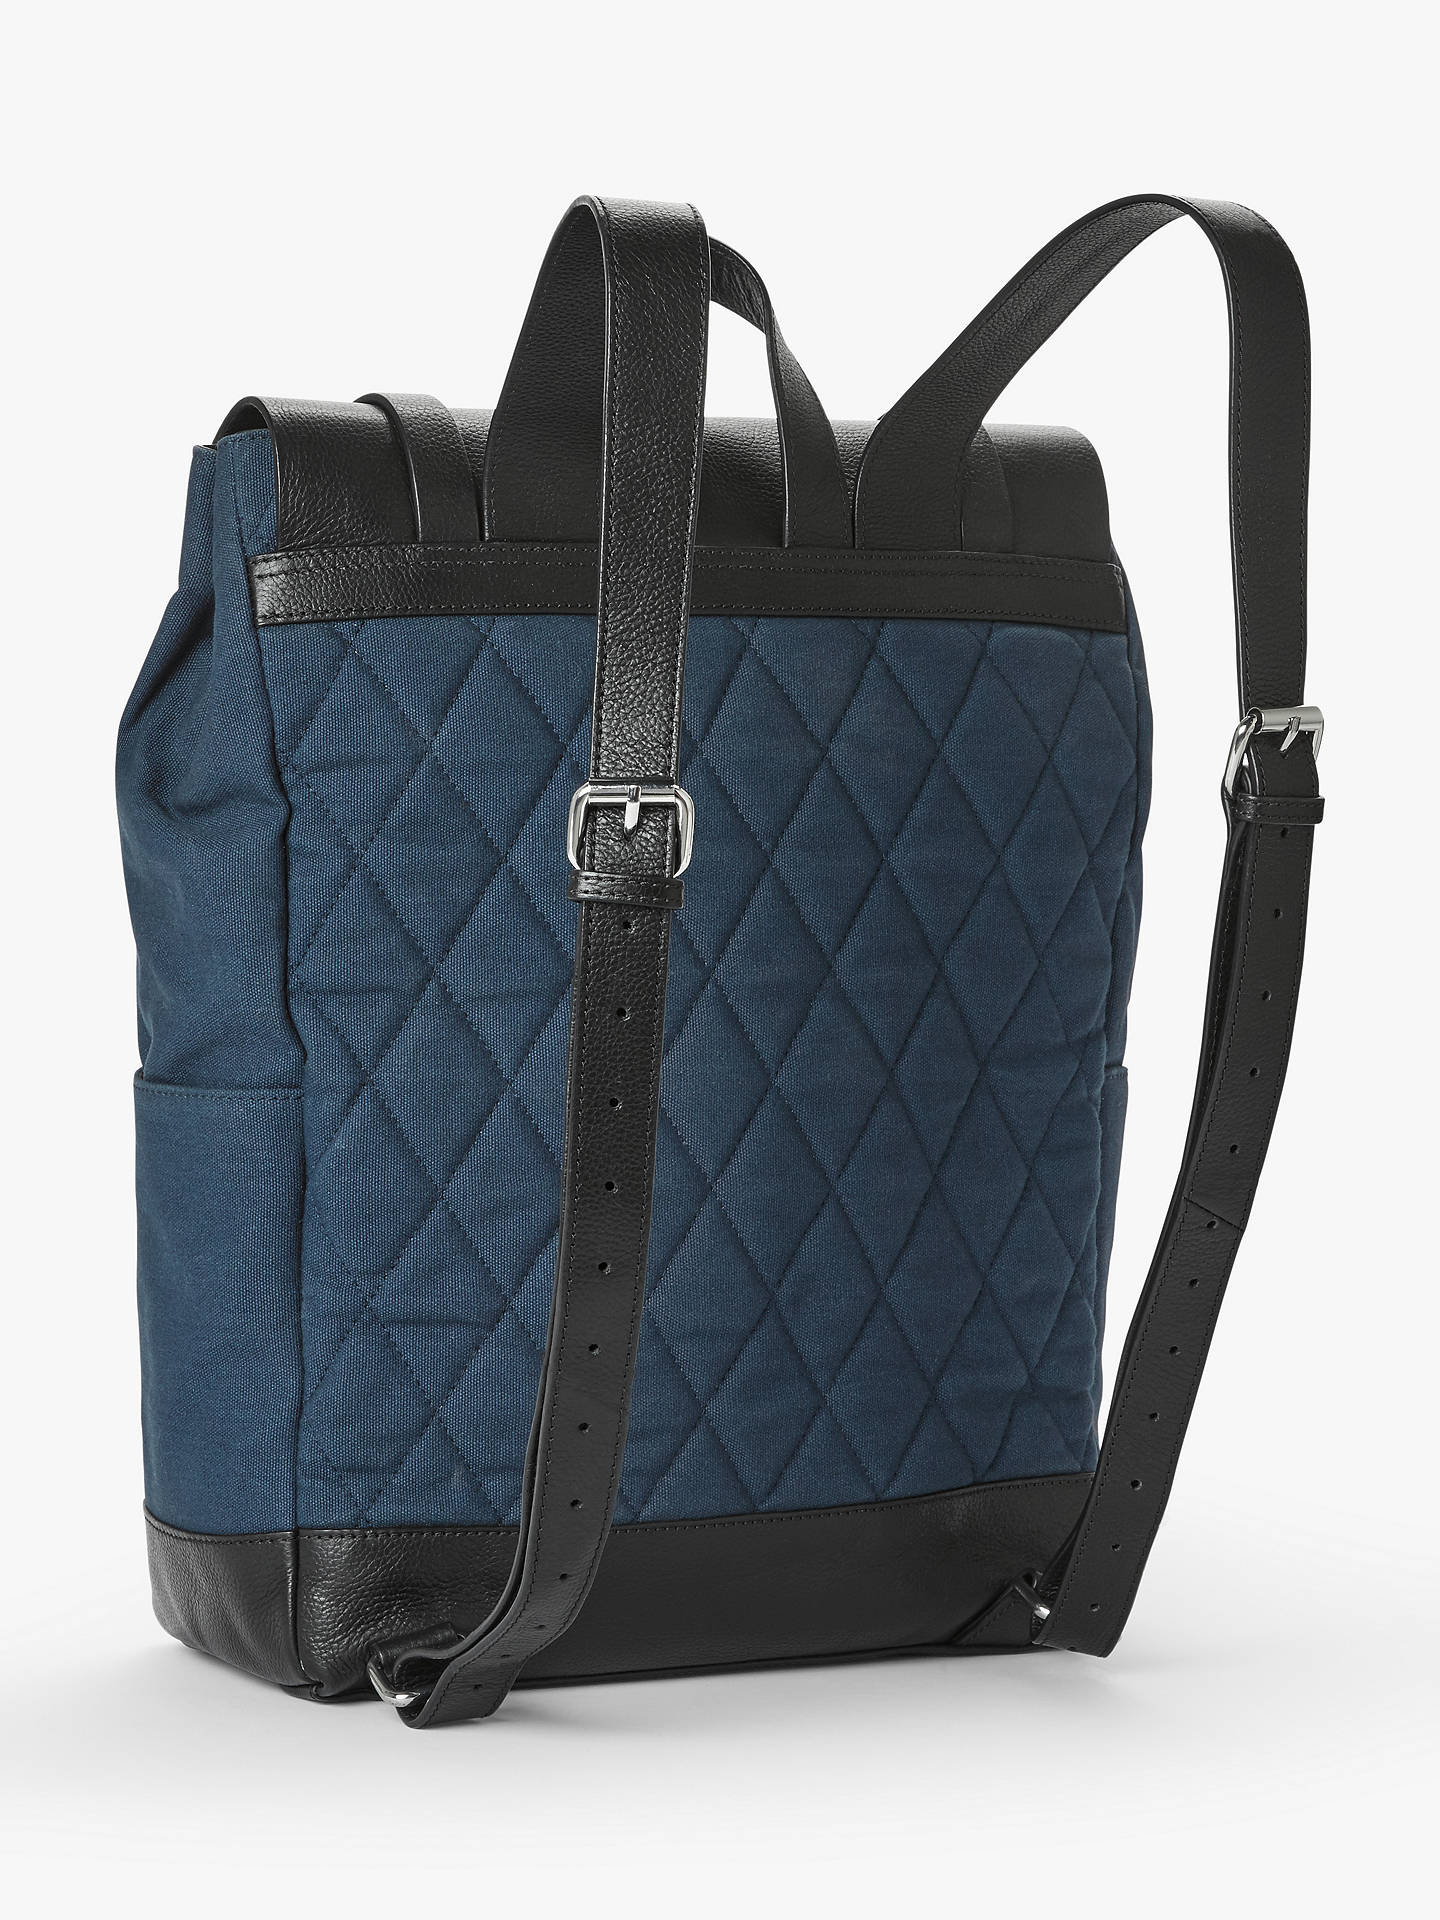 Buy John Lewis & Partners Dublin Cotton Canvas Backpack, Navy Online at johnlewis.com